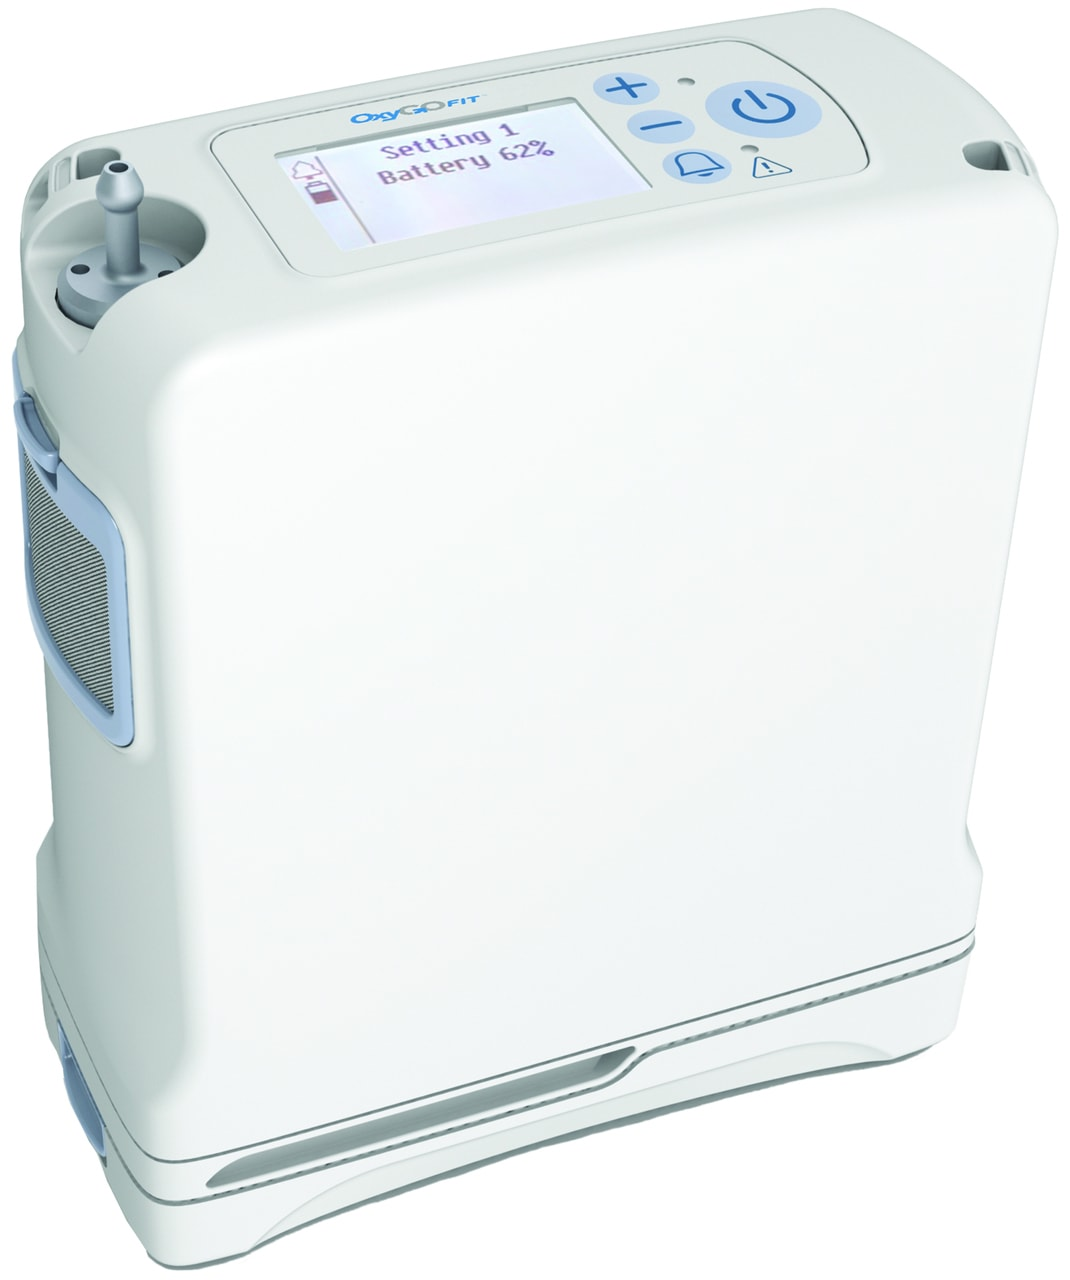 Oxygo Fit Portable Oxygen Concentrator Home Oxygen